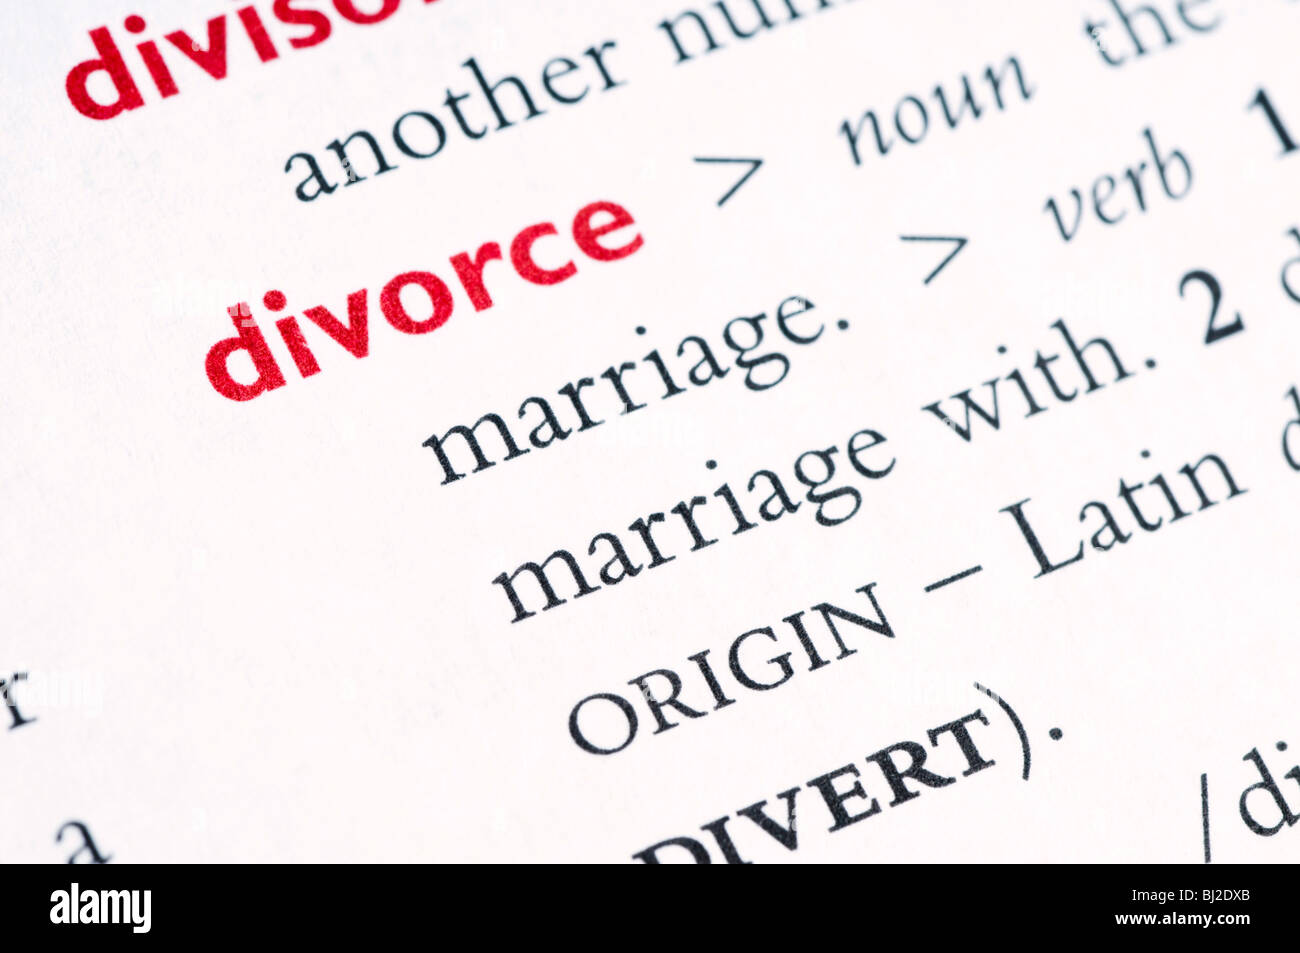 Définition du dictionnaire de divorce Photo Stock